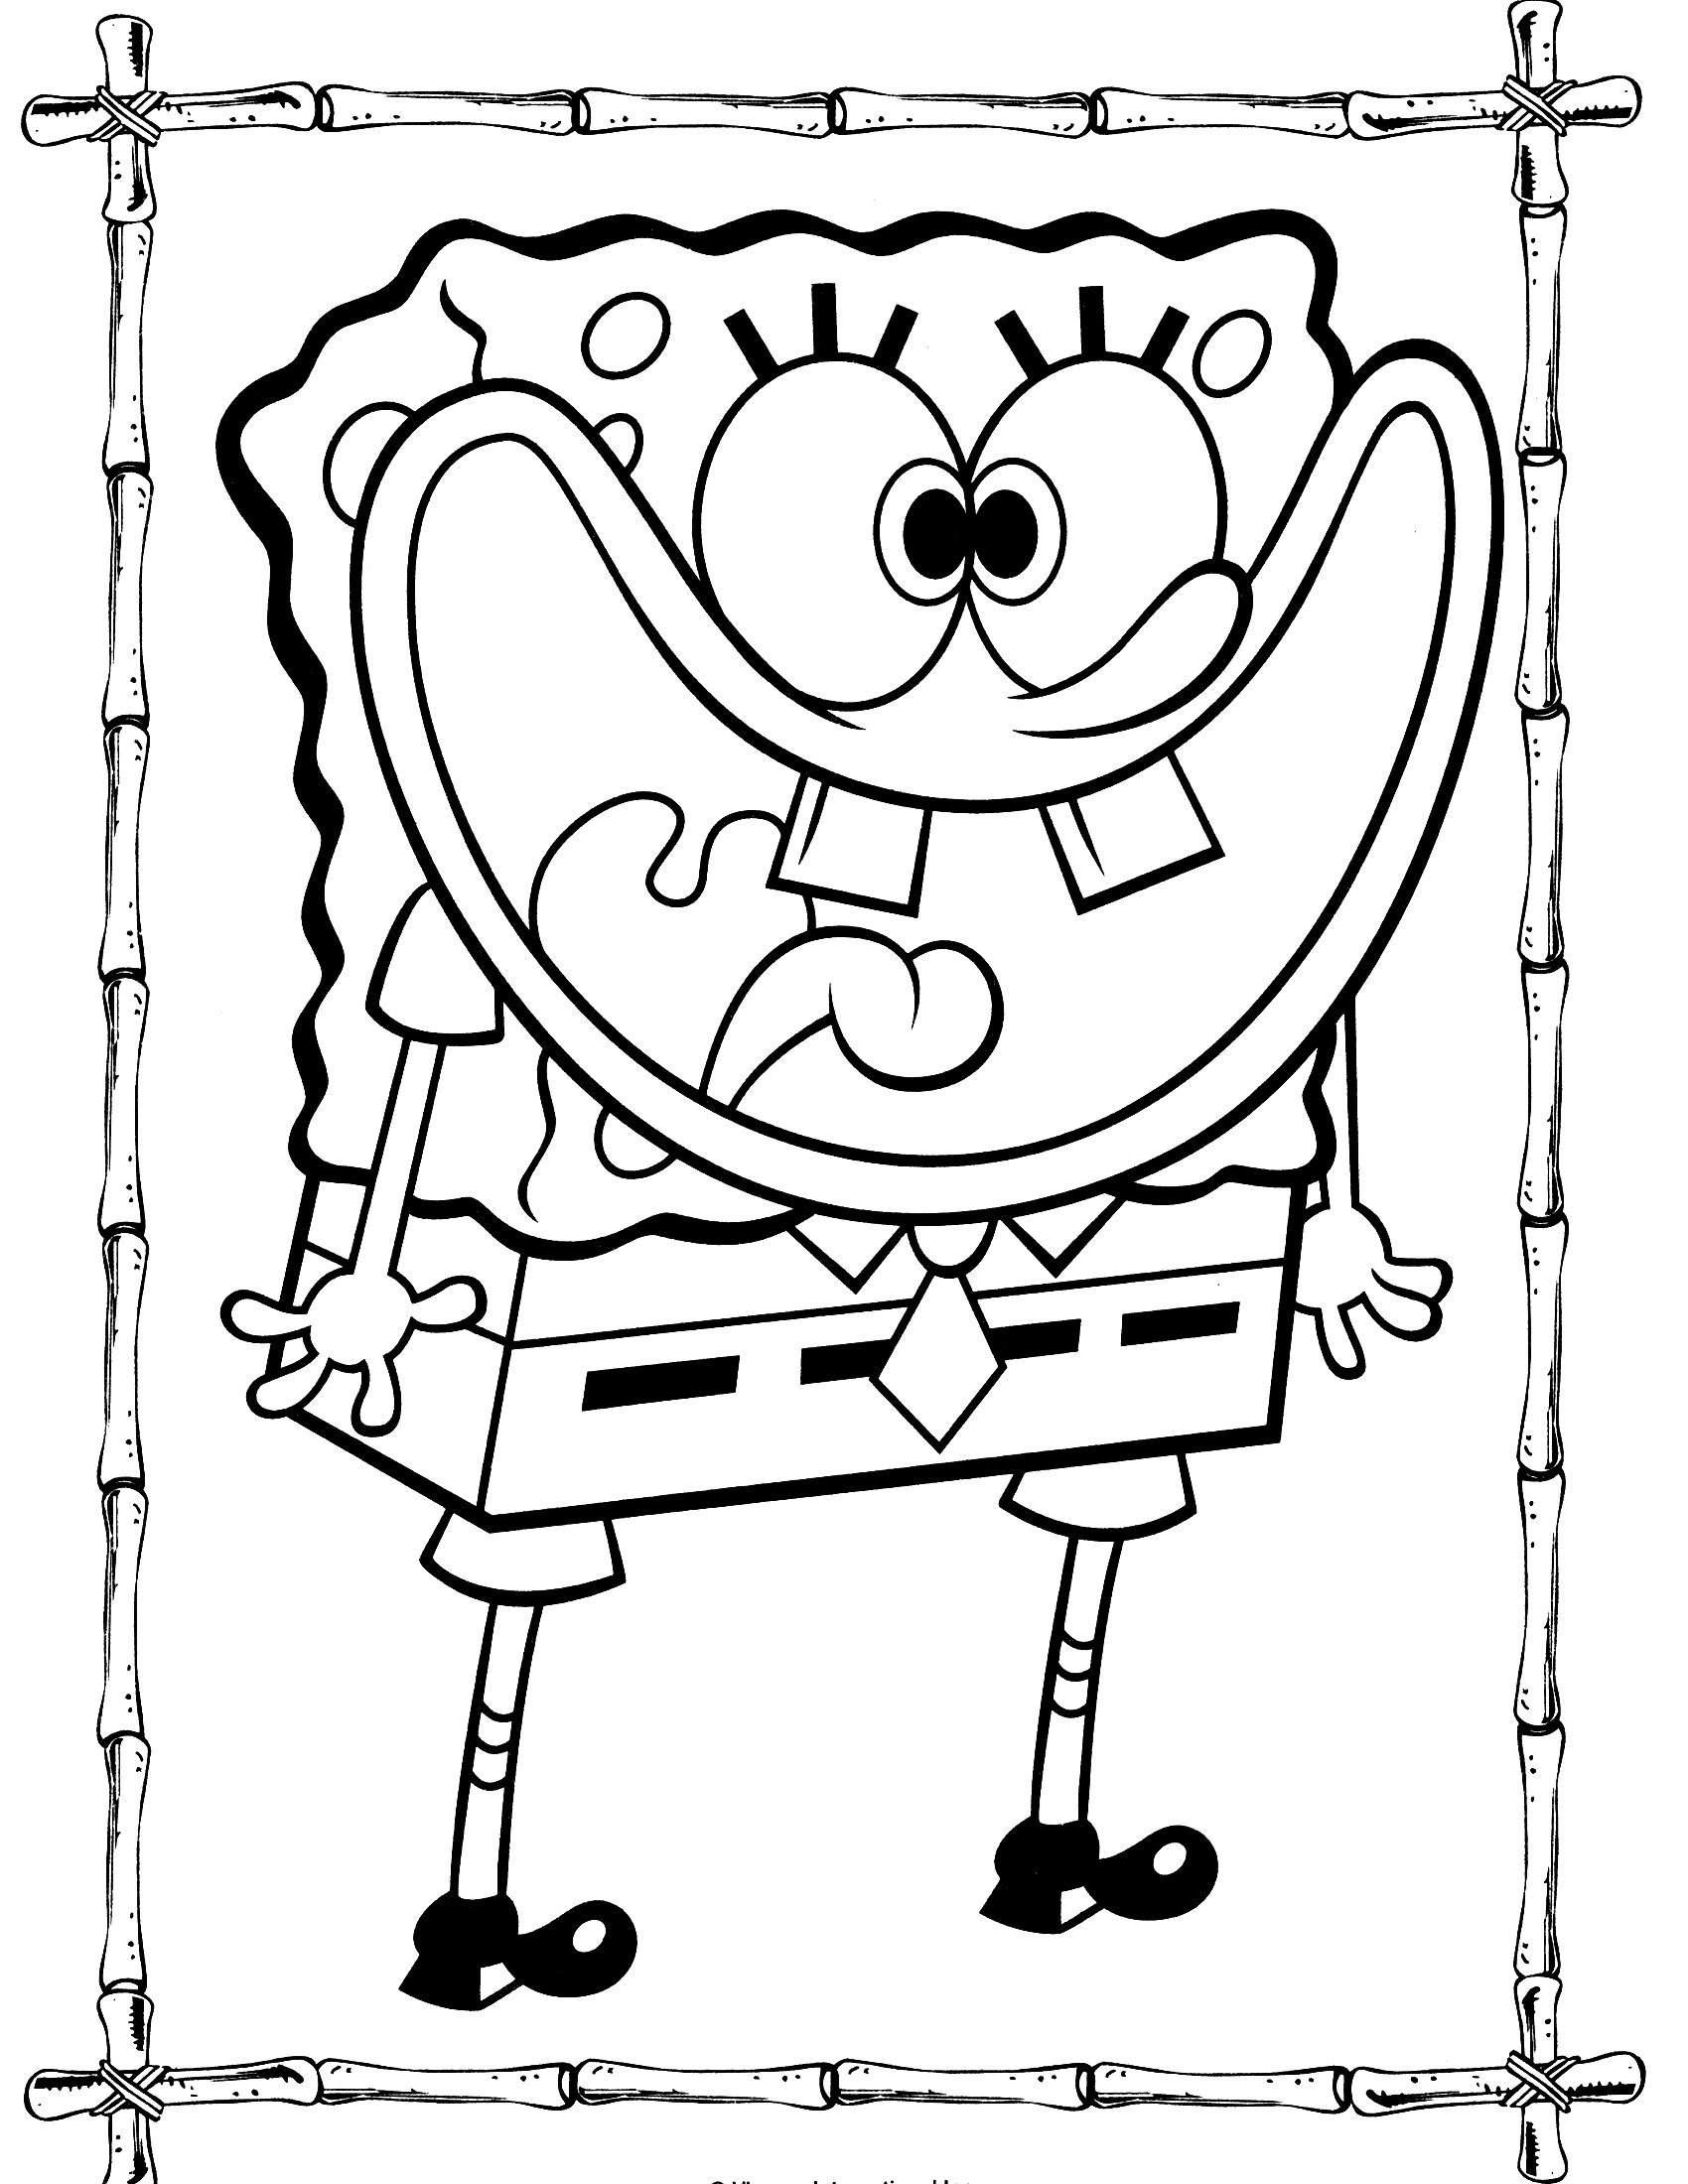 free printable spongebob coloring pages funny spongebob coloring pages at getdrawings free download coloring printable free spongebob pages